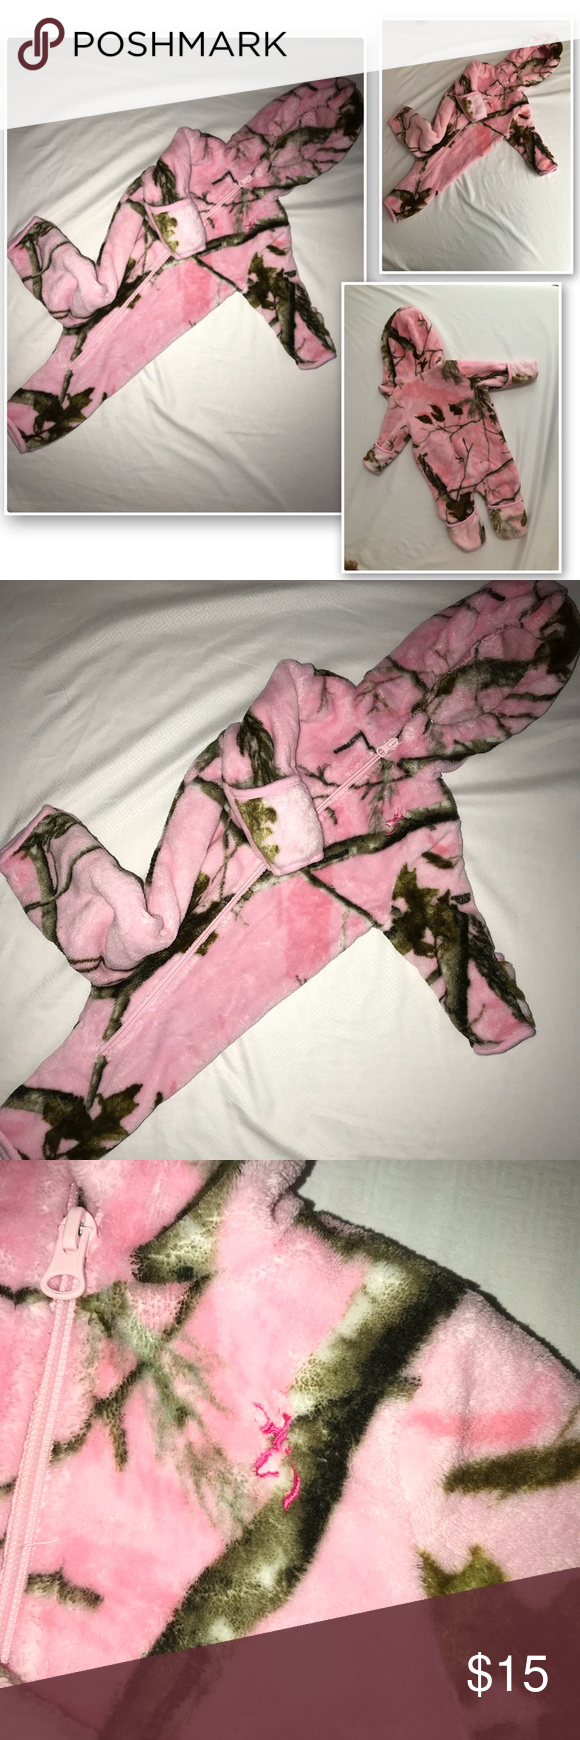 Baby/infant Bunting Snowsuit Realtree Pink🌸 A very nice